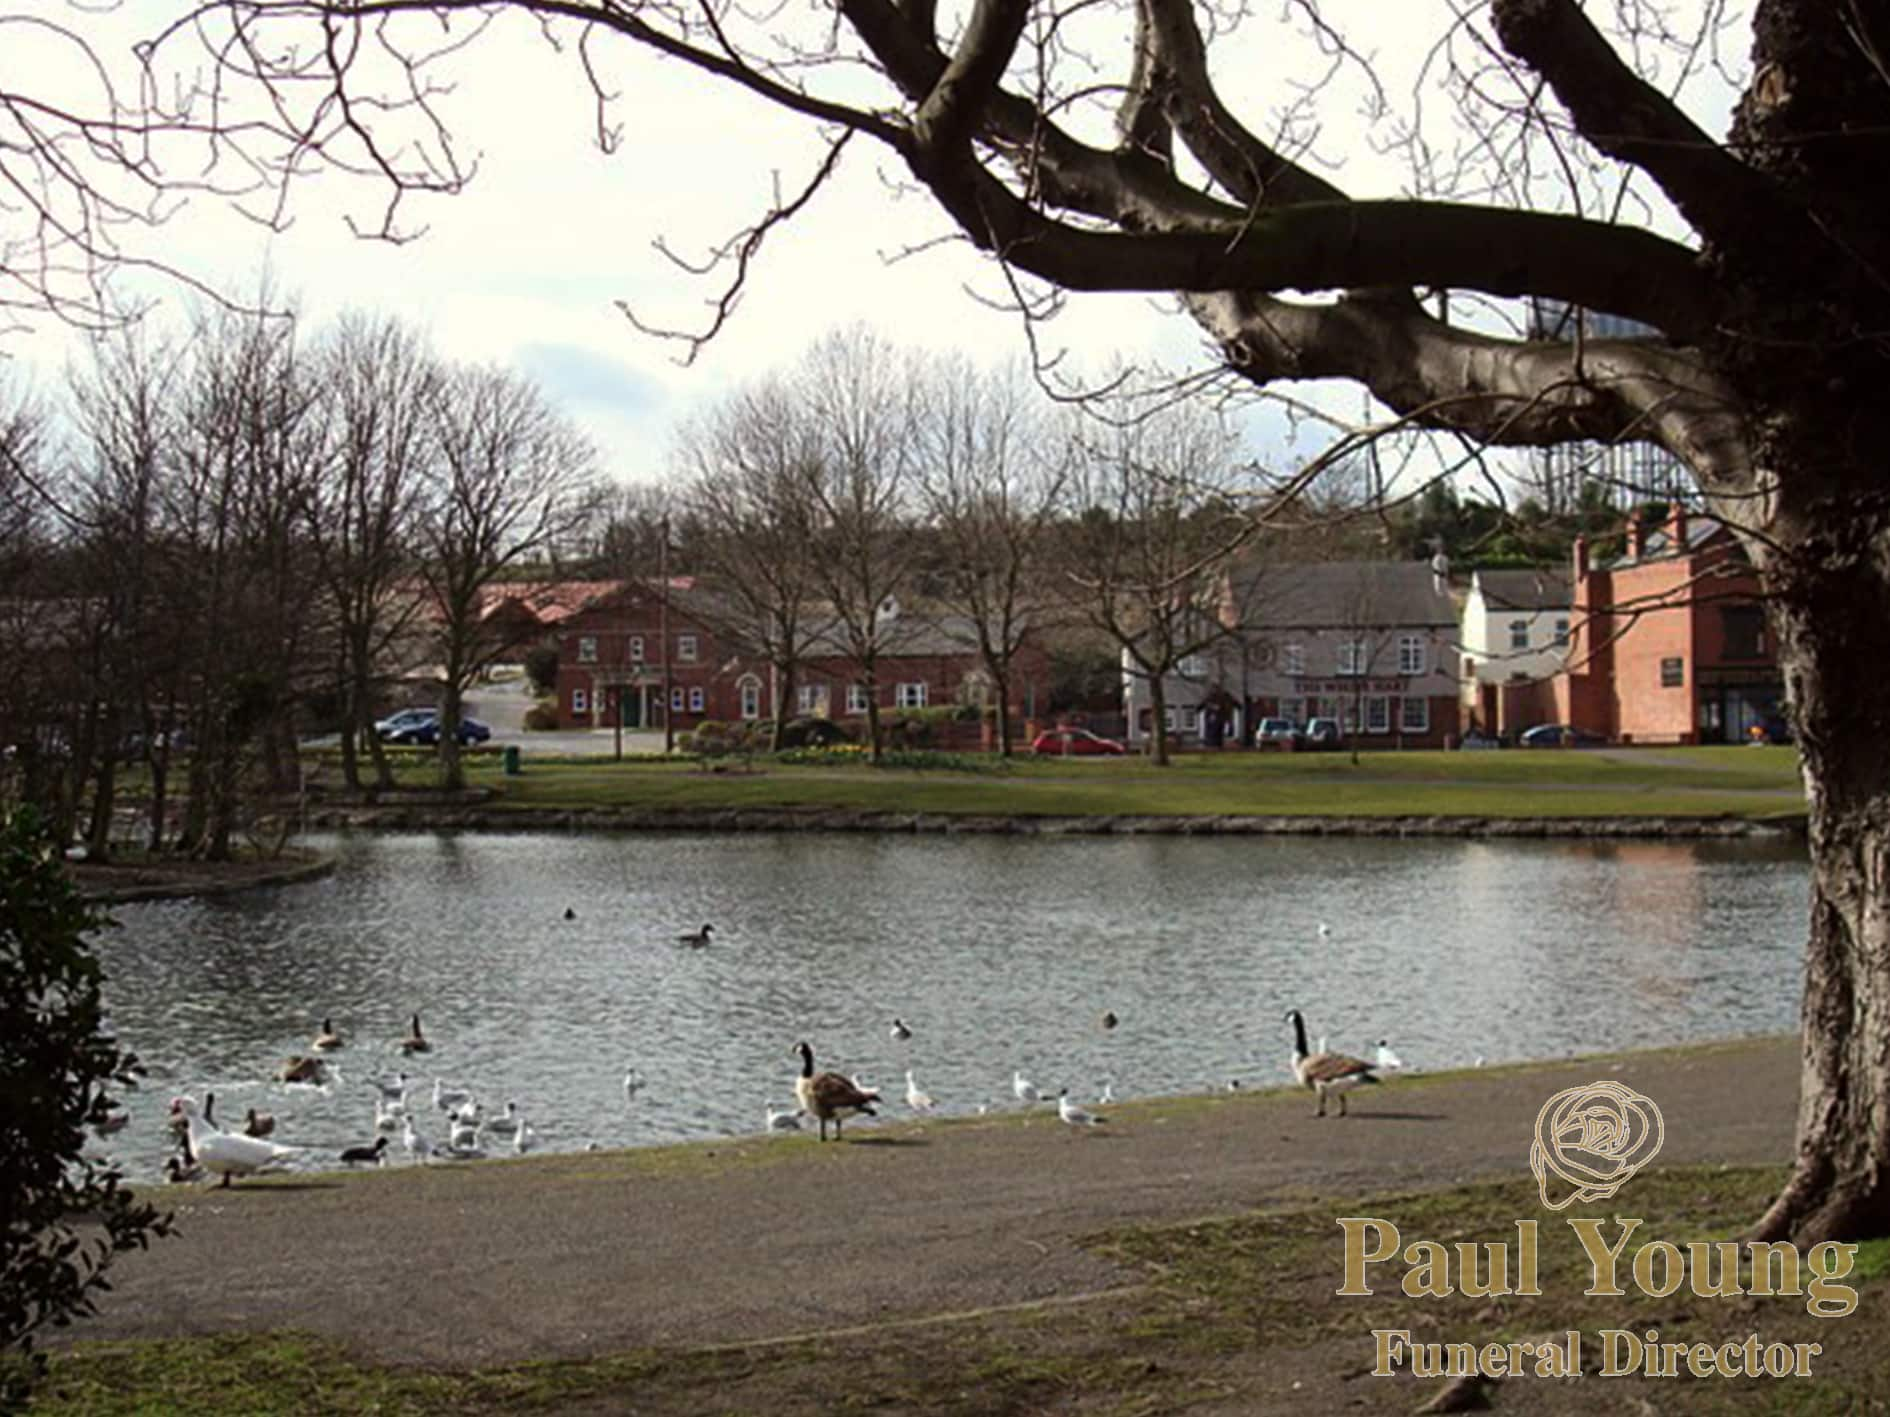 Askern Spa Pool, near the home of Askern Funeral Director Paul Young